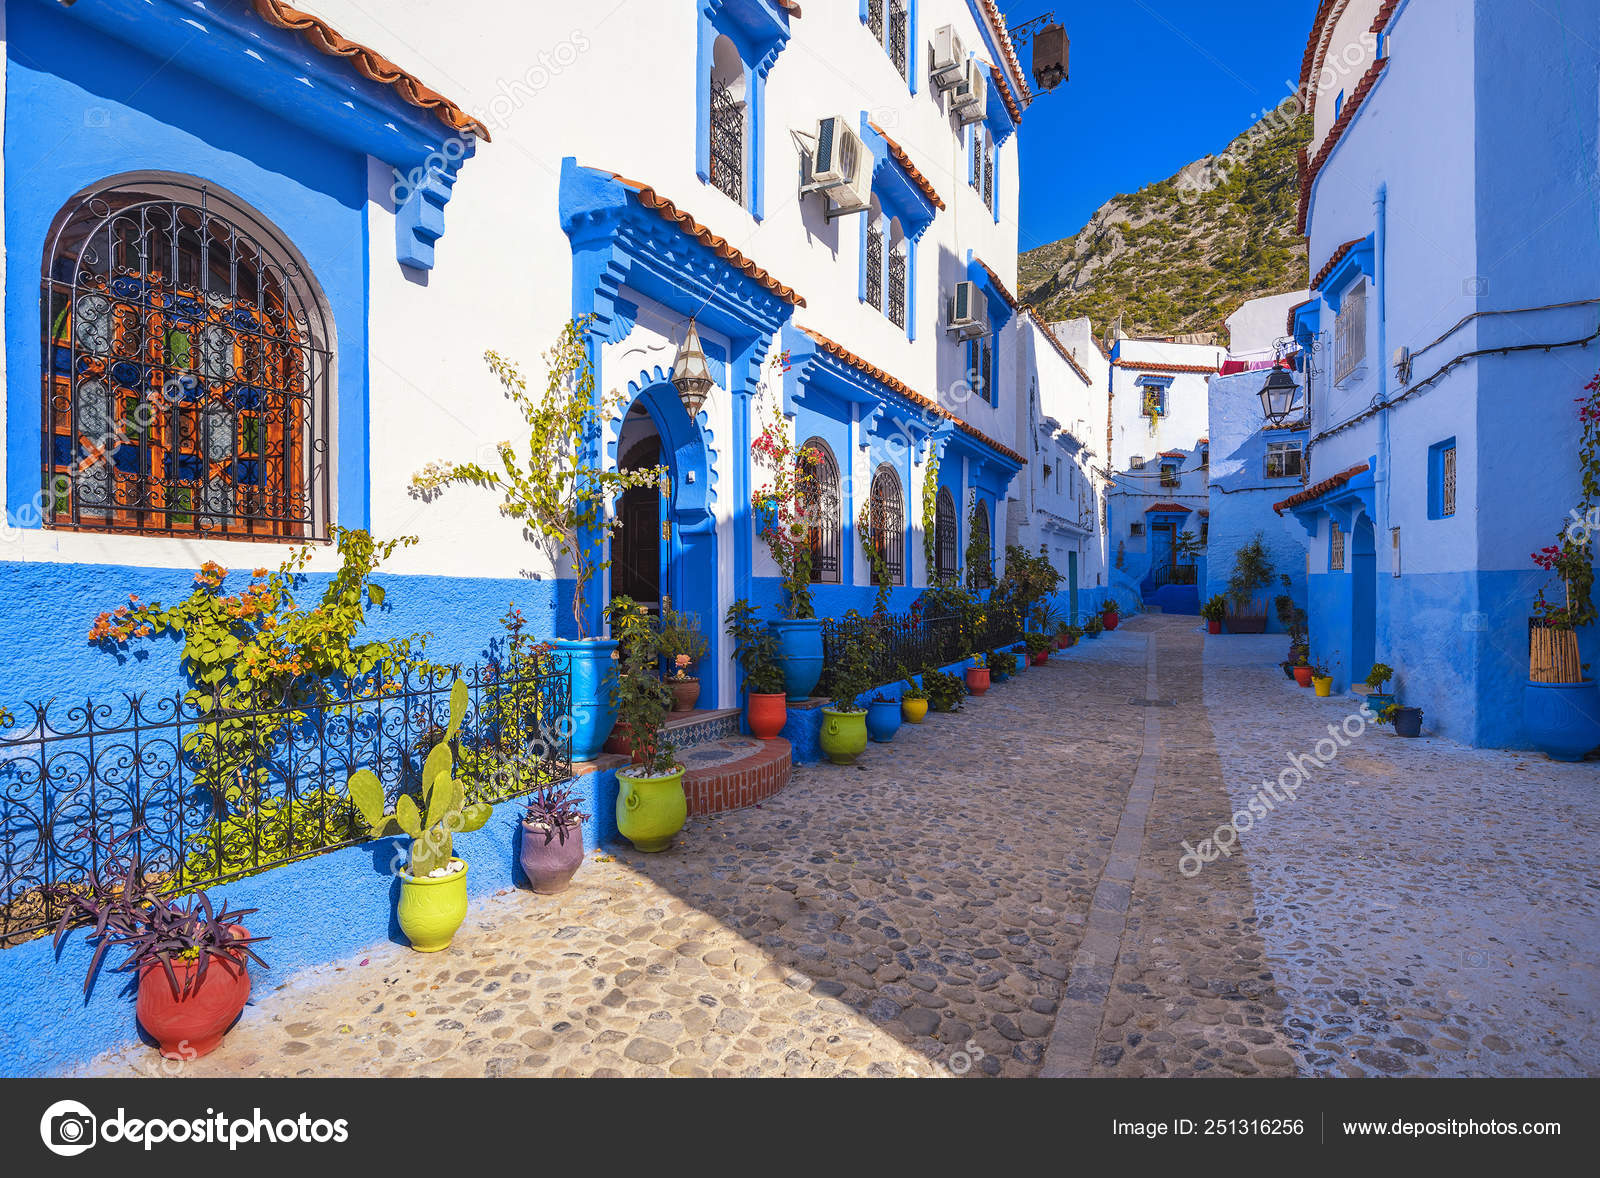 Blue Walls Chefchaouen City Medina Morocco Bright Doors Colorful Flower Stock Photo Image By C Dsaprin 251316256